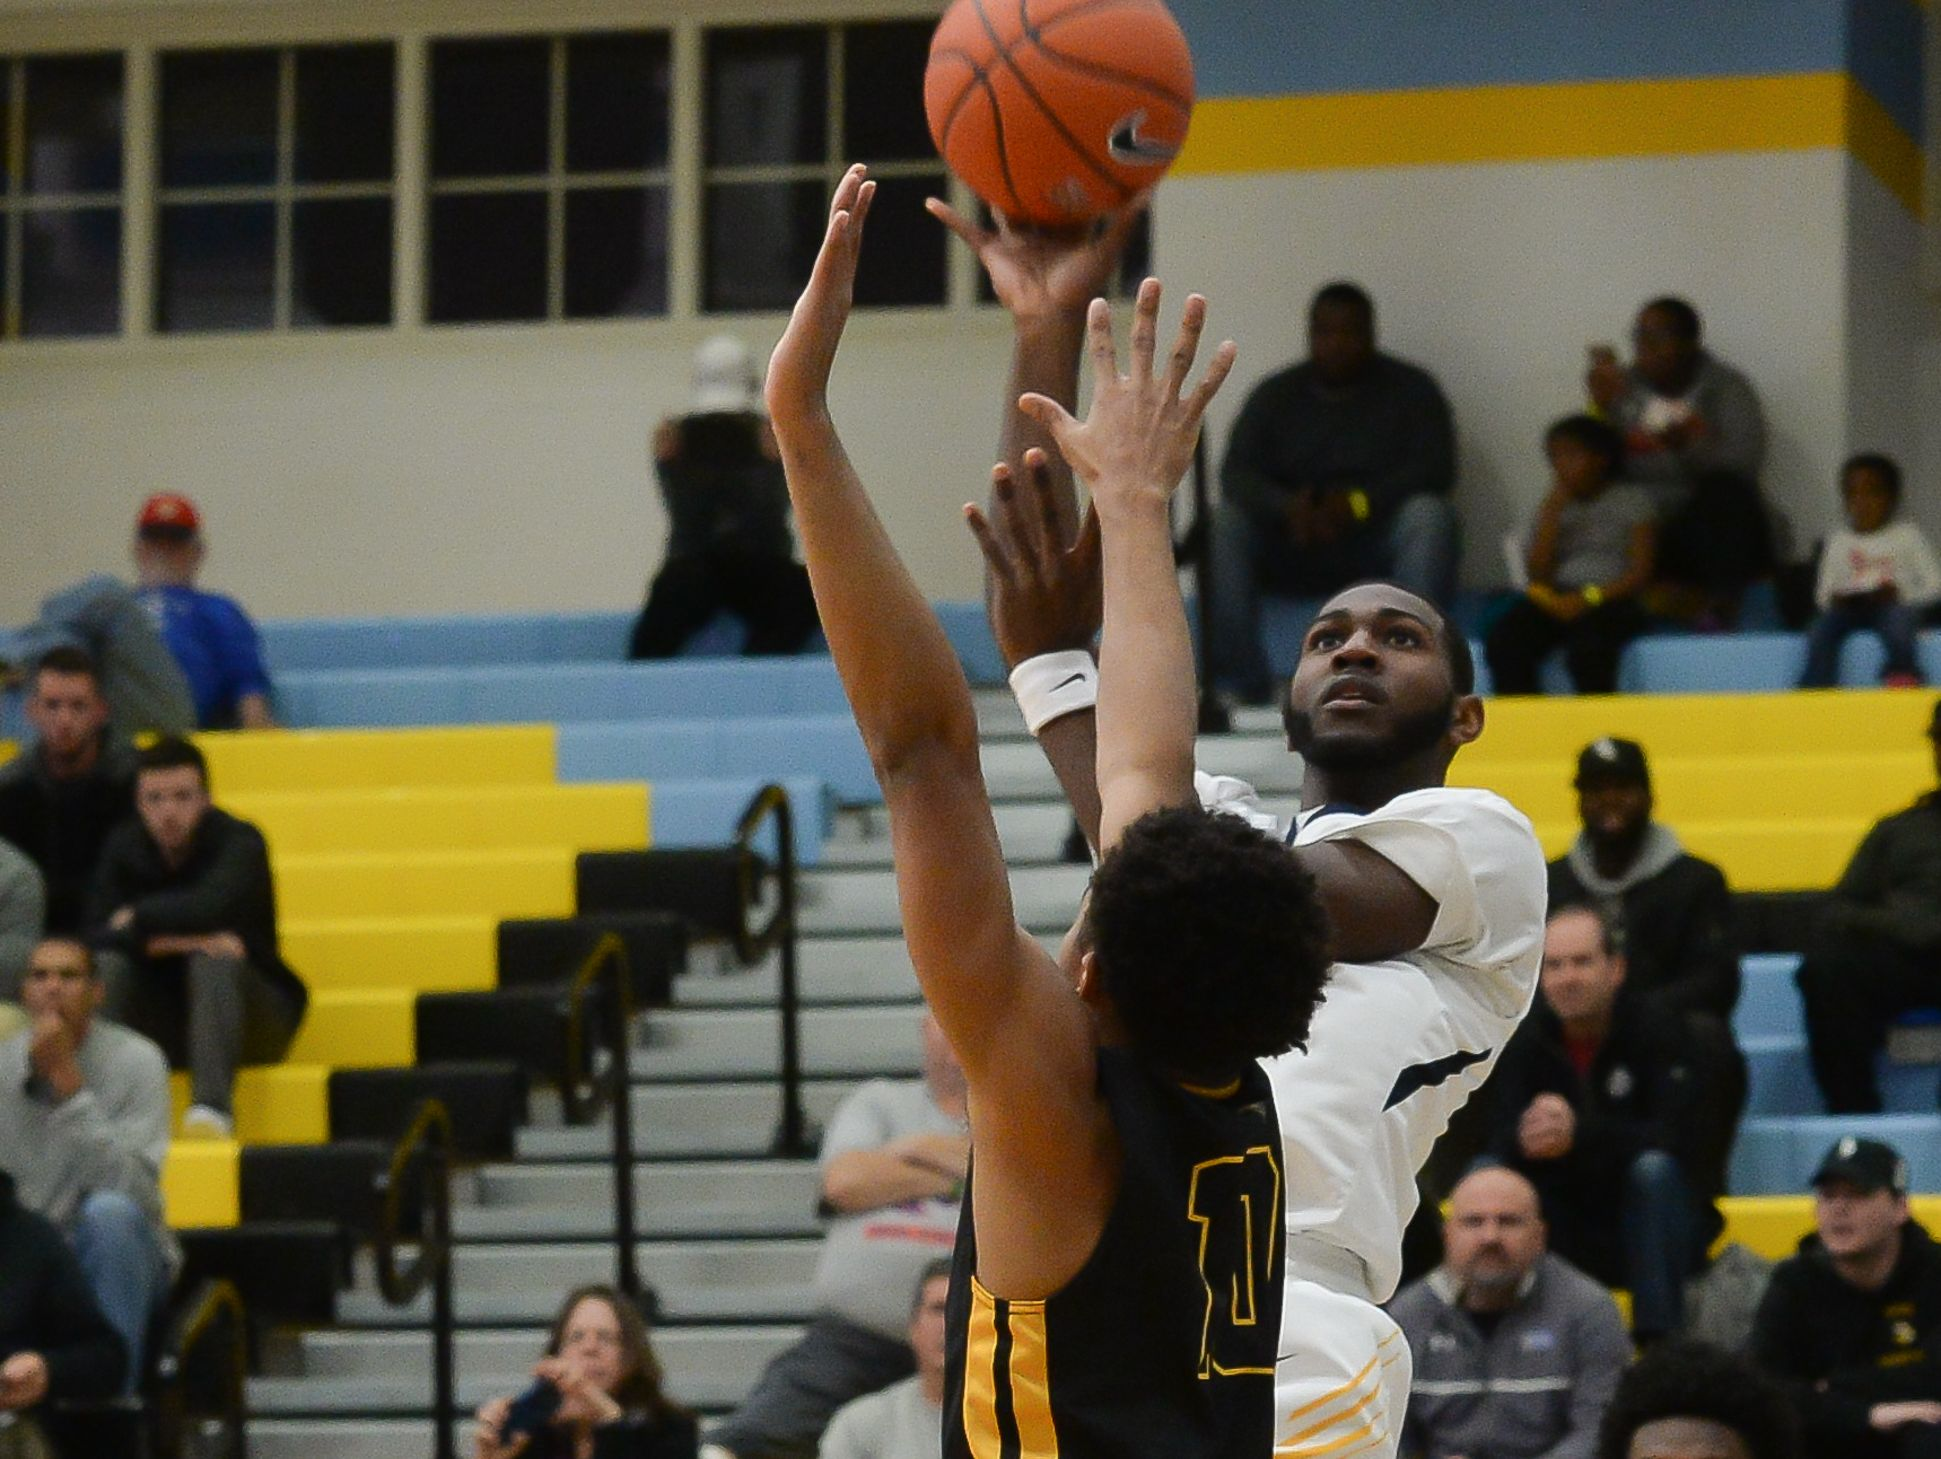 Sanford School's Marcus McCollum with the jumper over Archbishop Wood during the Slam Dunk to the Beach on Wednesday, Dec 28, 2016. Final Score Sanford School- 47 ,Archbishop Wood- 72